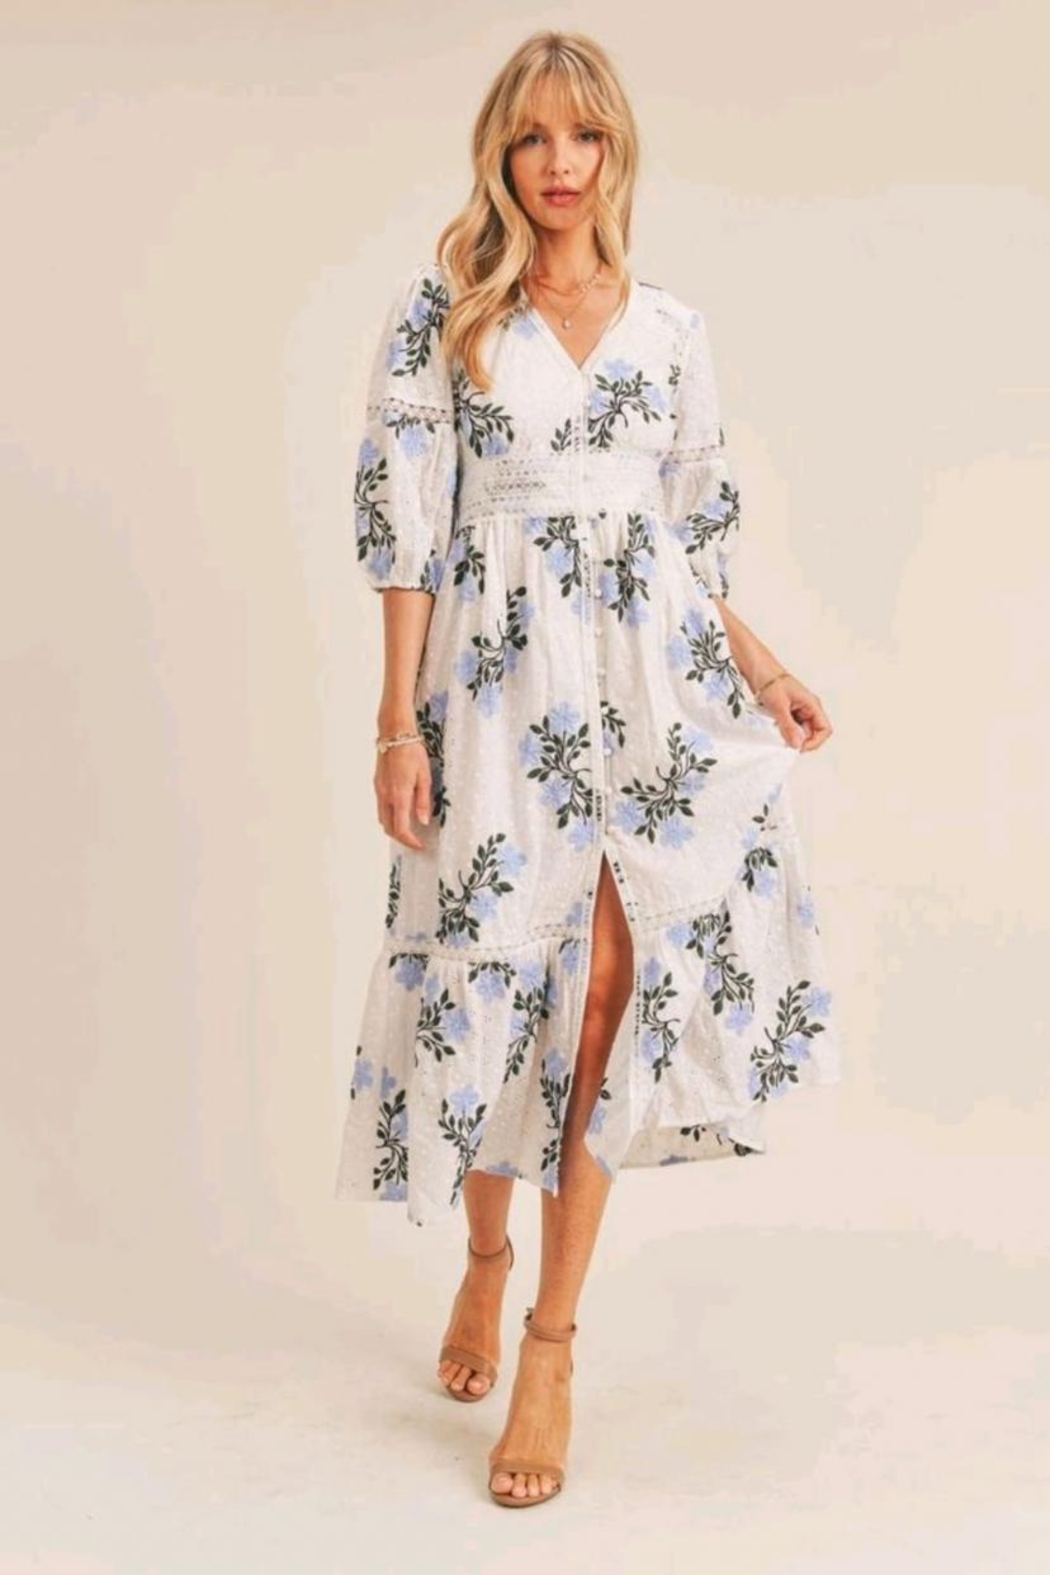 Just Me Floral Embroidered Dress - Main Image